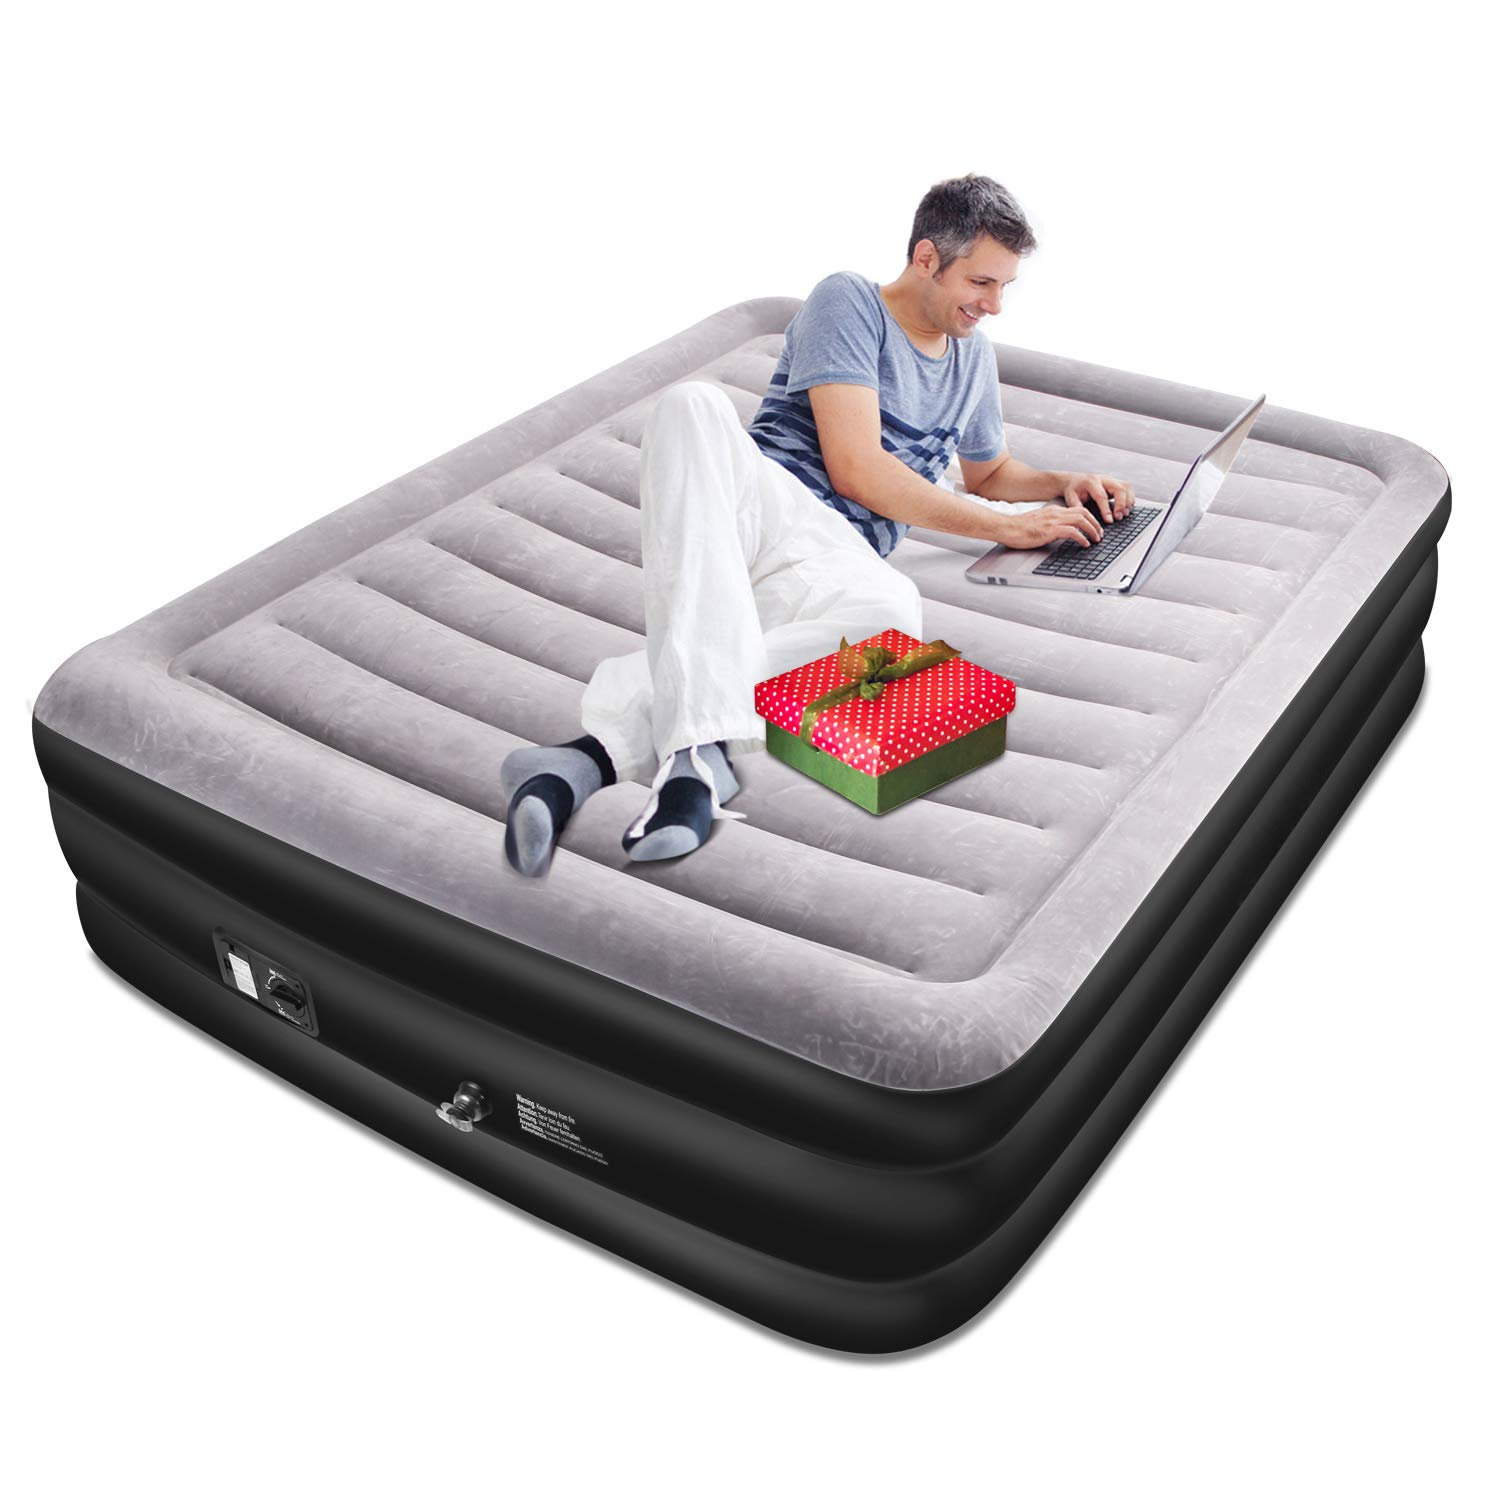 Queen Size Air Mattress with Built-in Electric Pump and Storage Bag High 20in